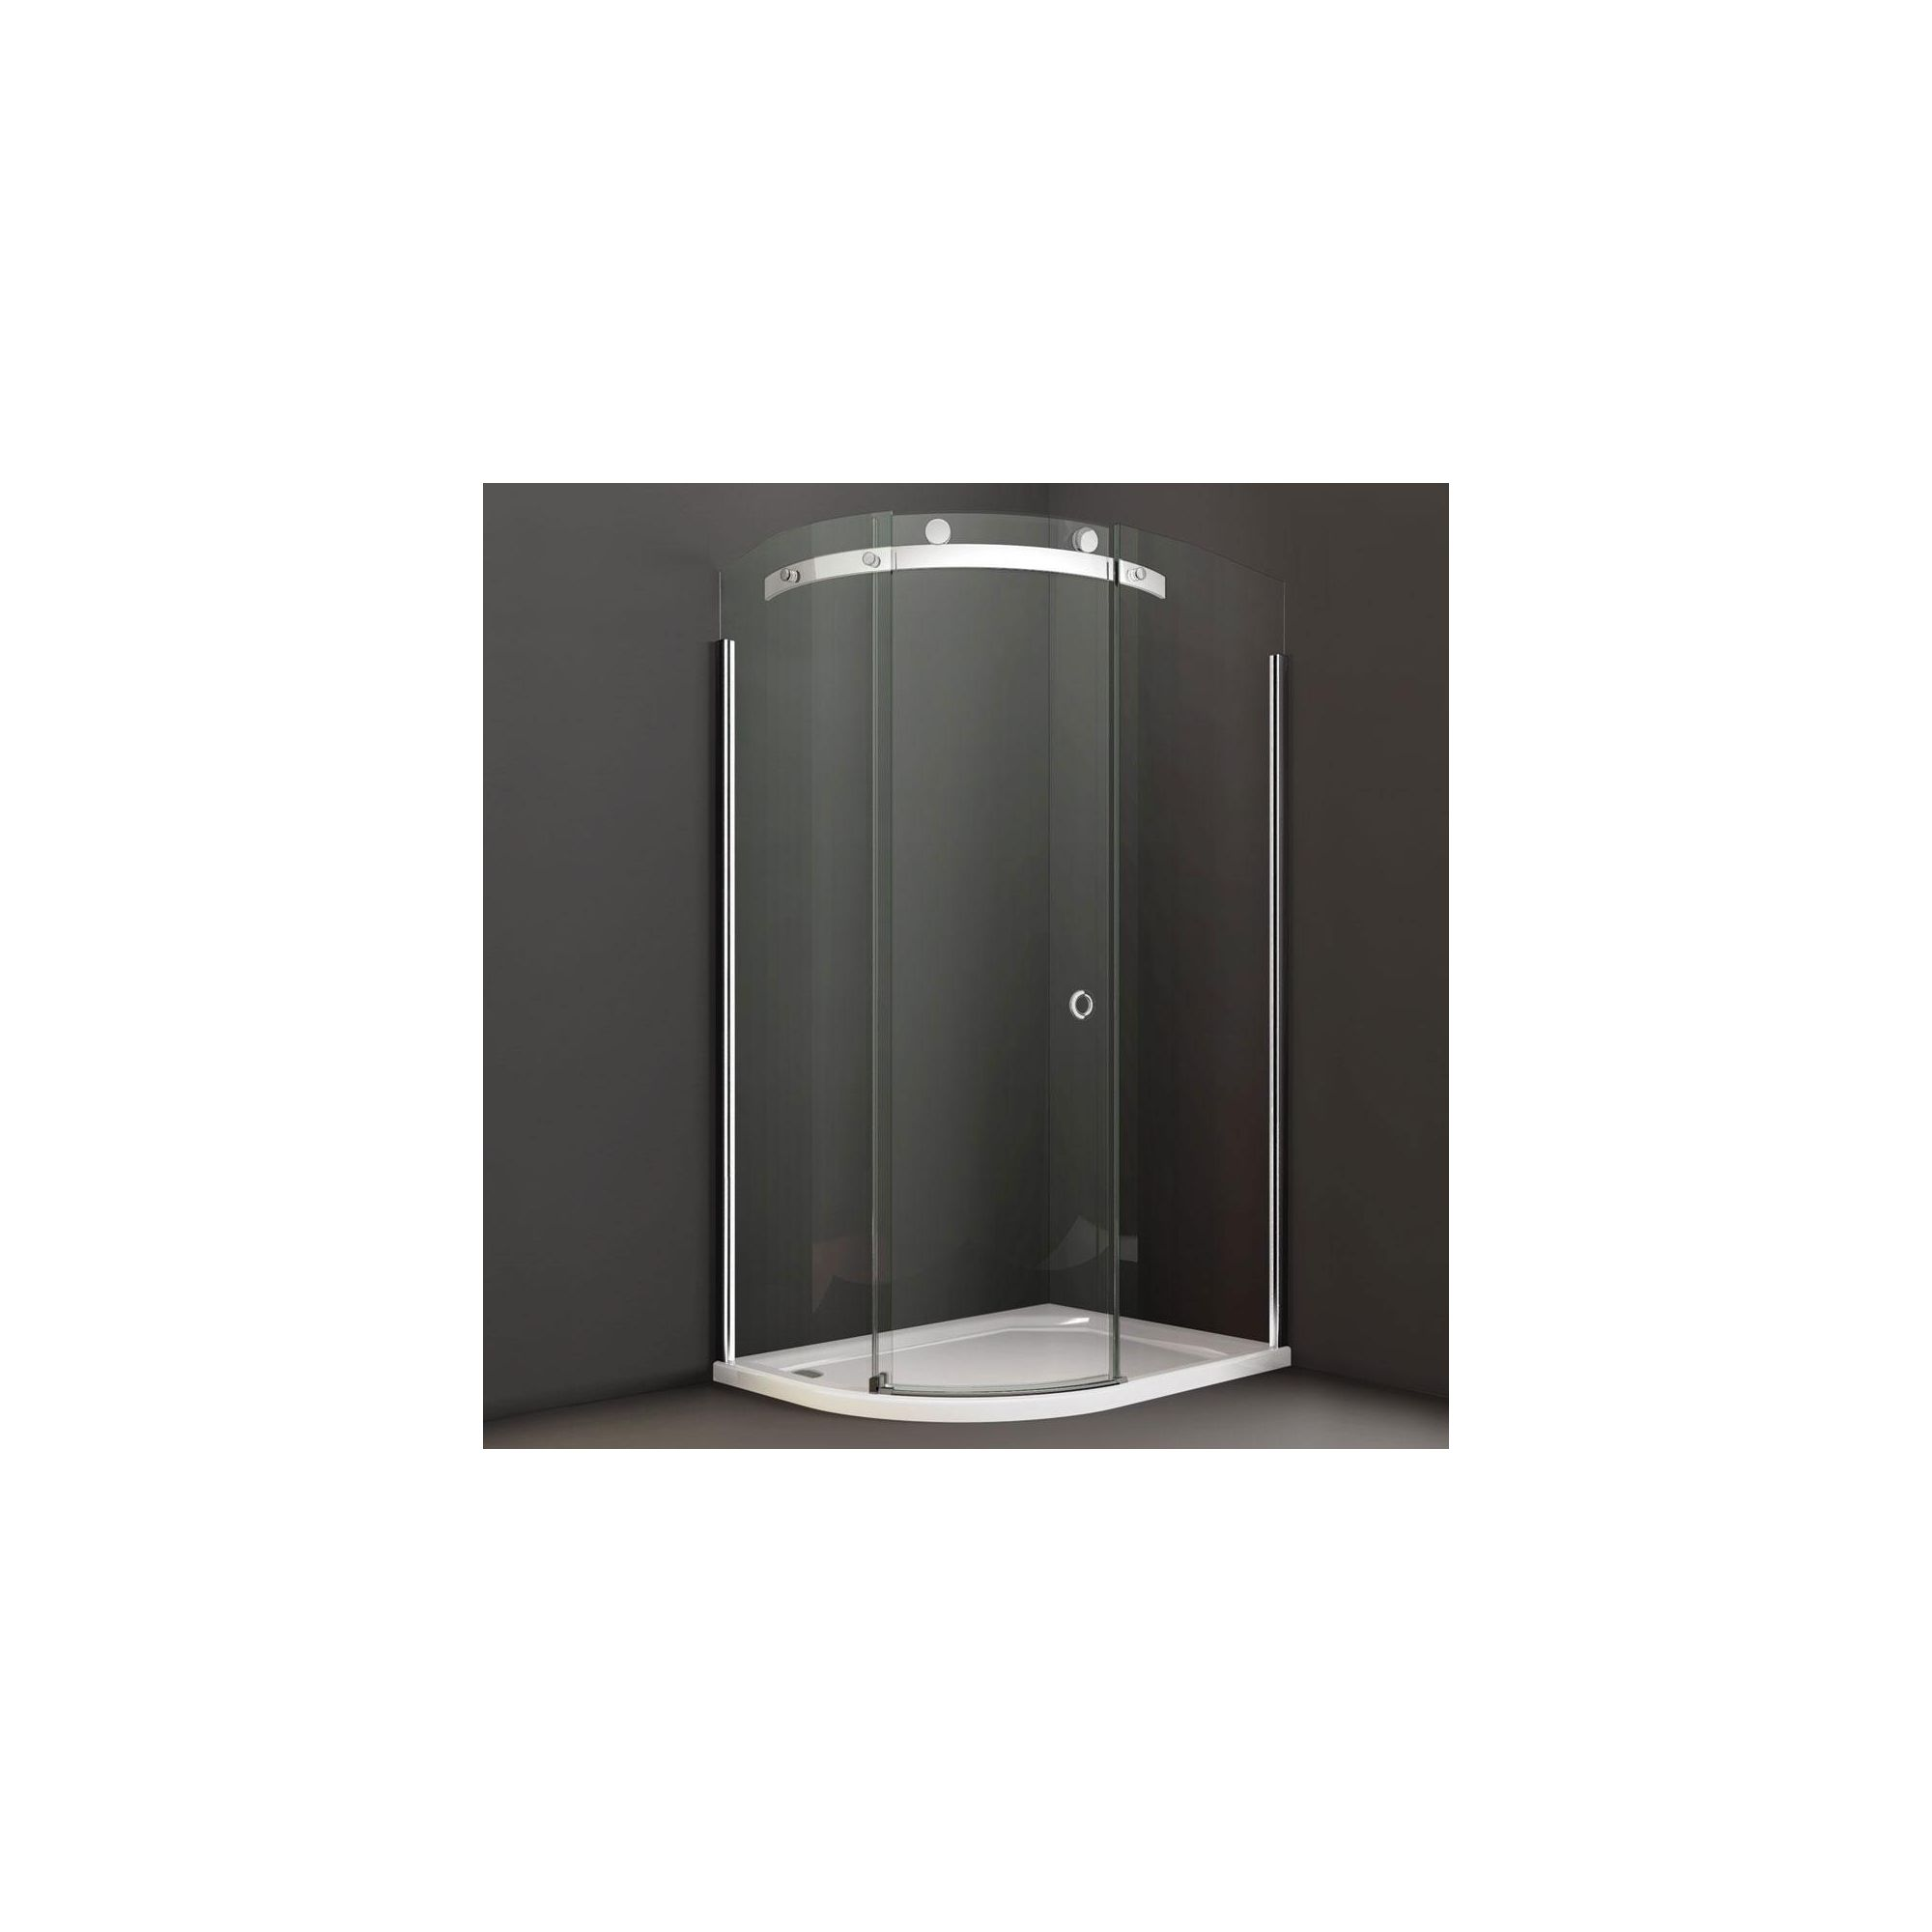 Merlyn Series 10 Offset Quadrant Shower Door, 1200mm x 900mm, 10mm Smoked Glass, Left Handed at Tesco Direct